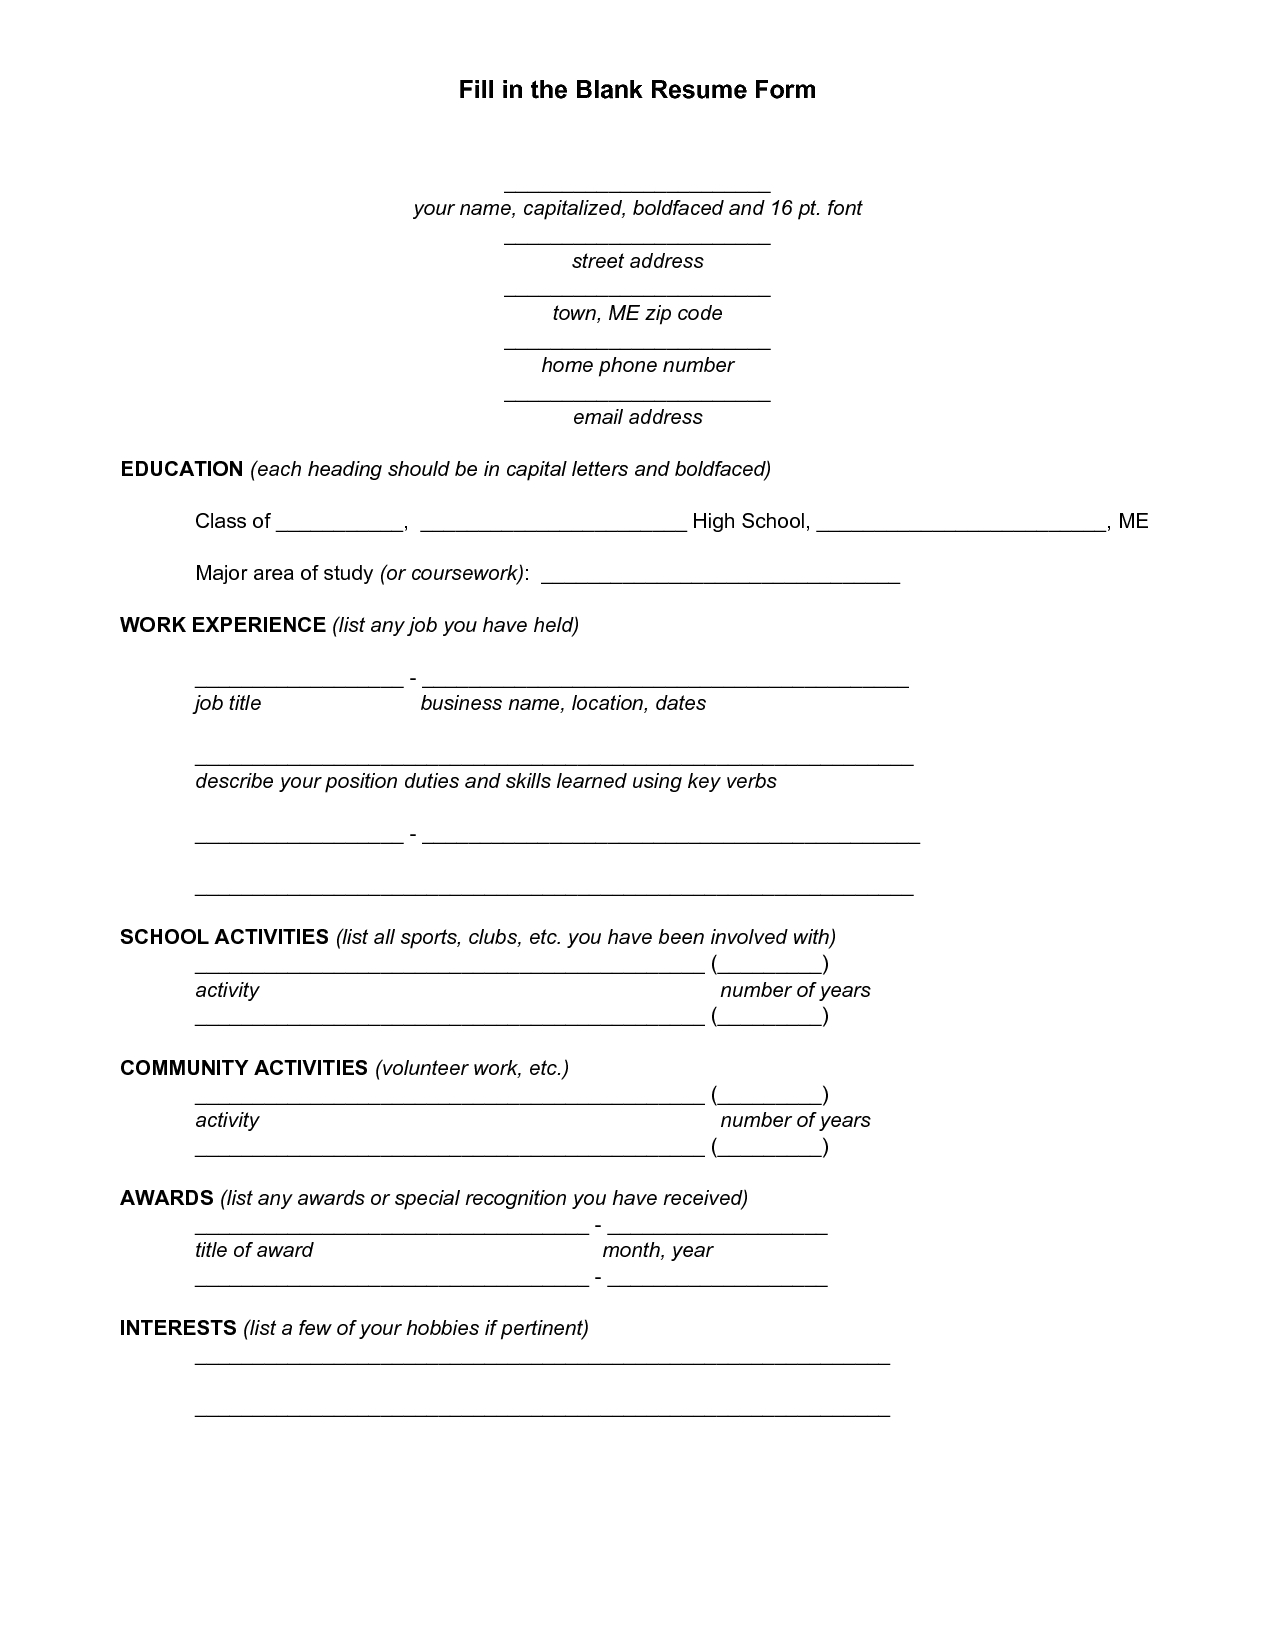 Free Fill In Resume - Magdalene-Project throughout Free Blank Cv Template Download